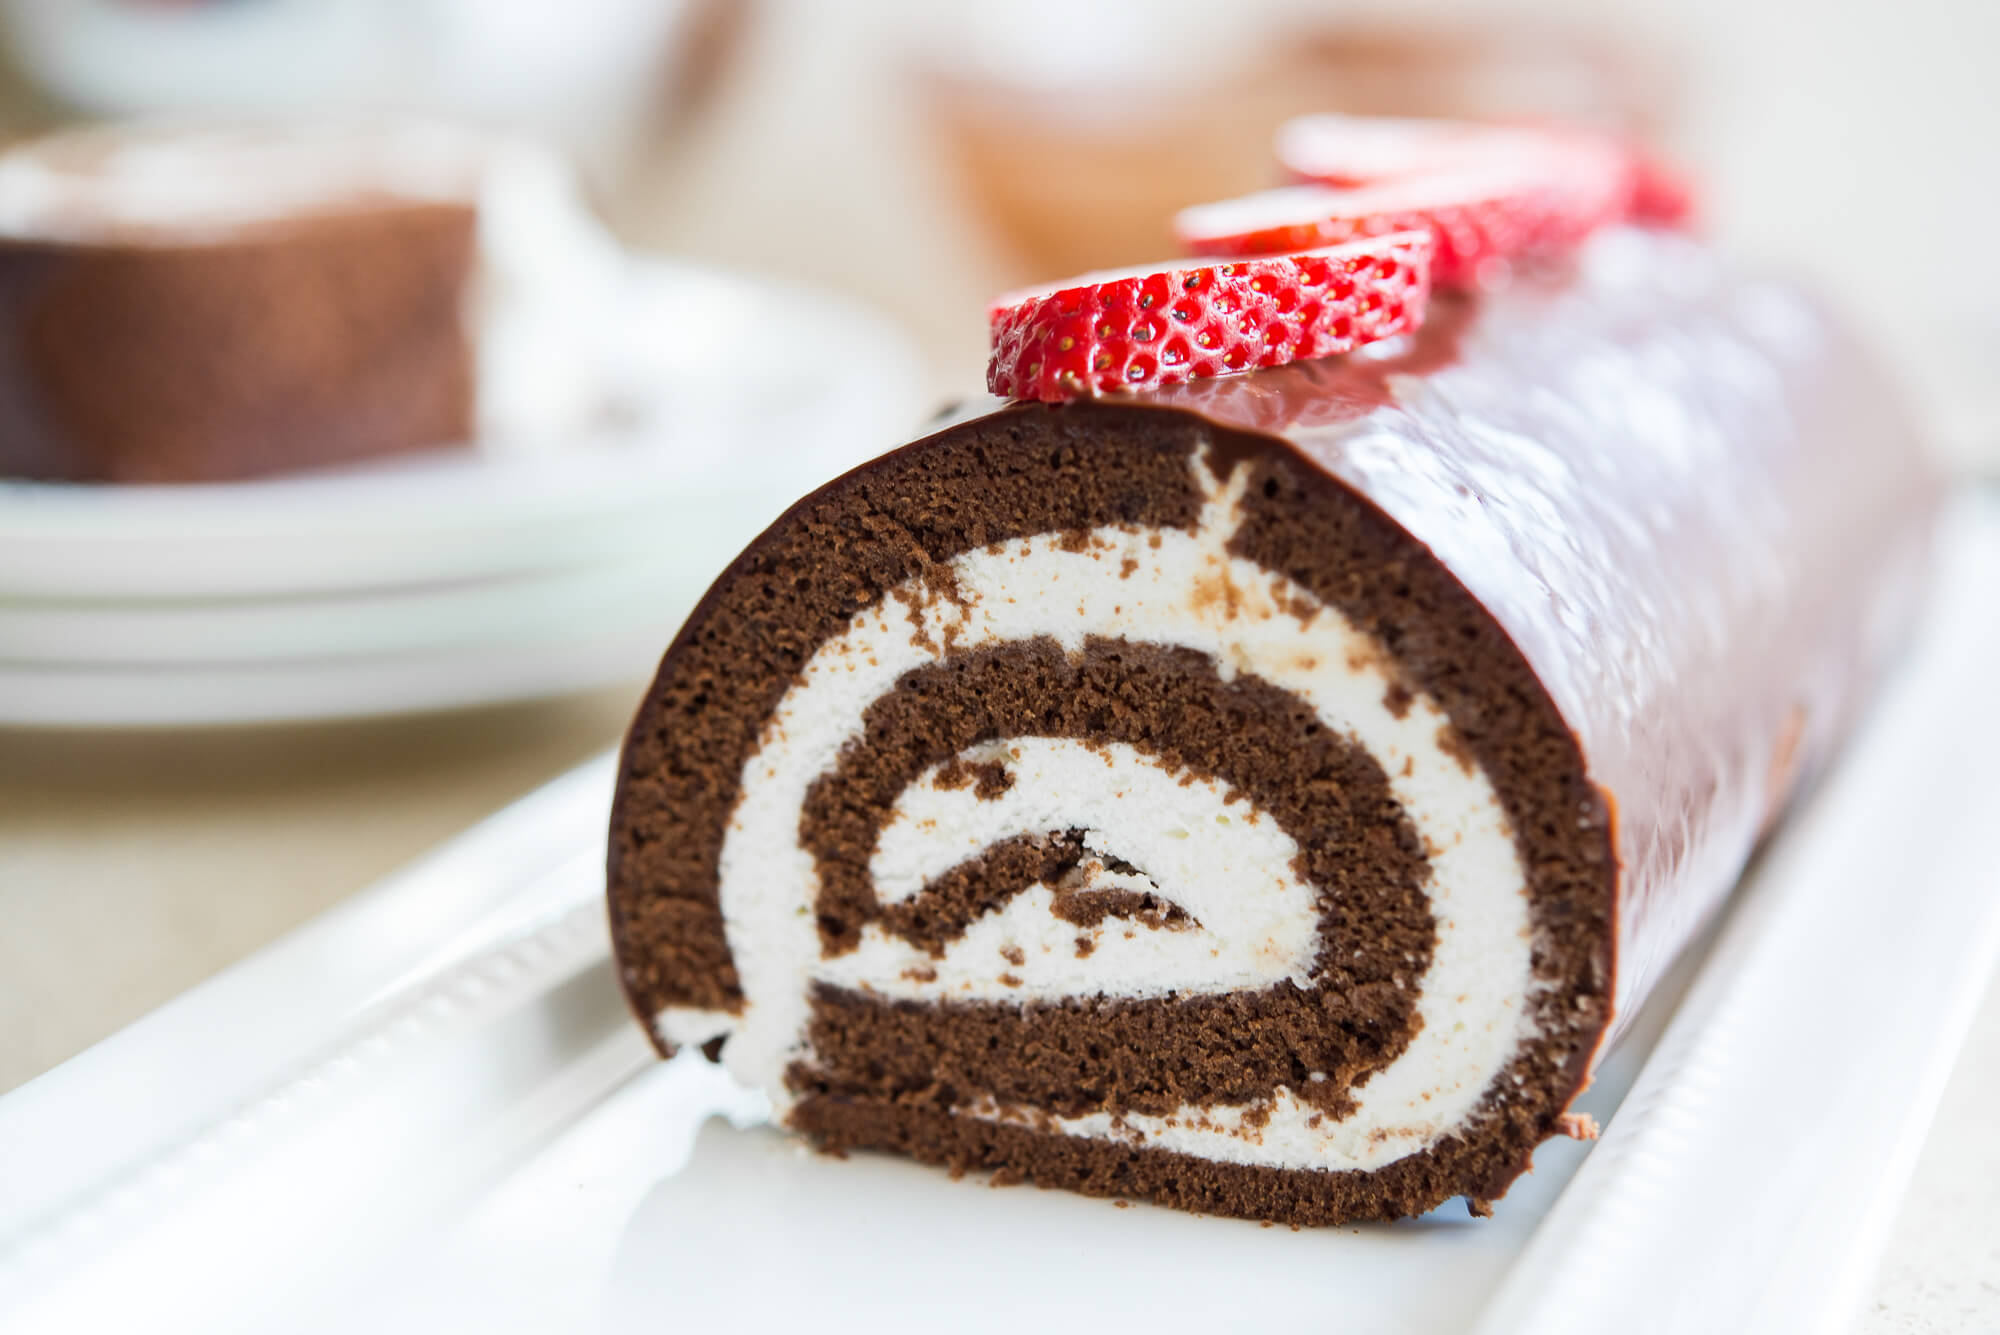 Roll up the goodness when the holidays roll out.